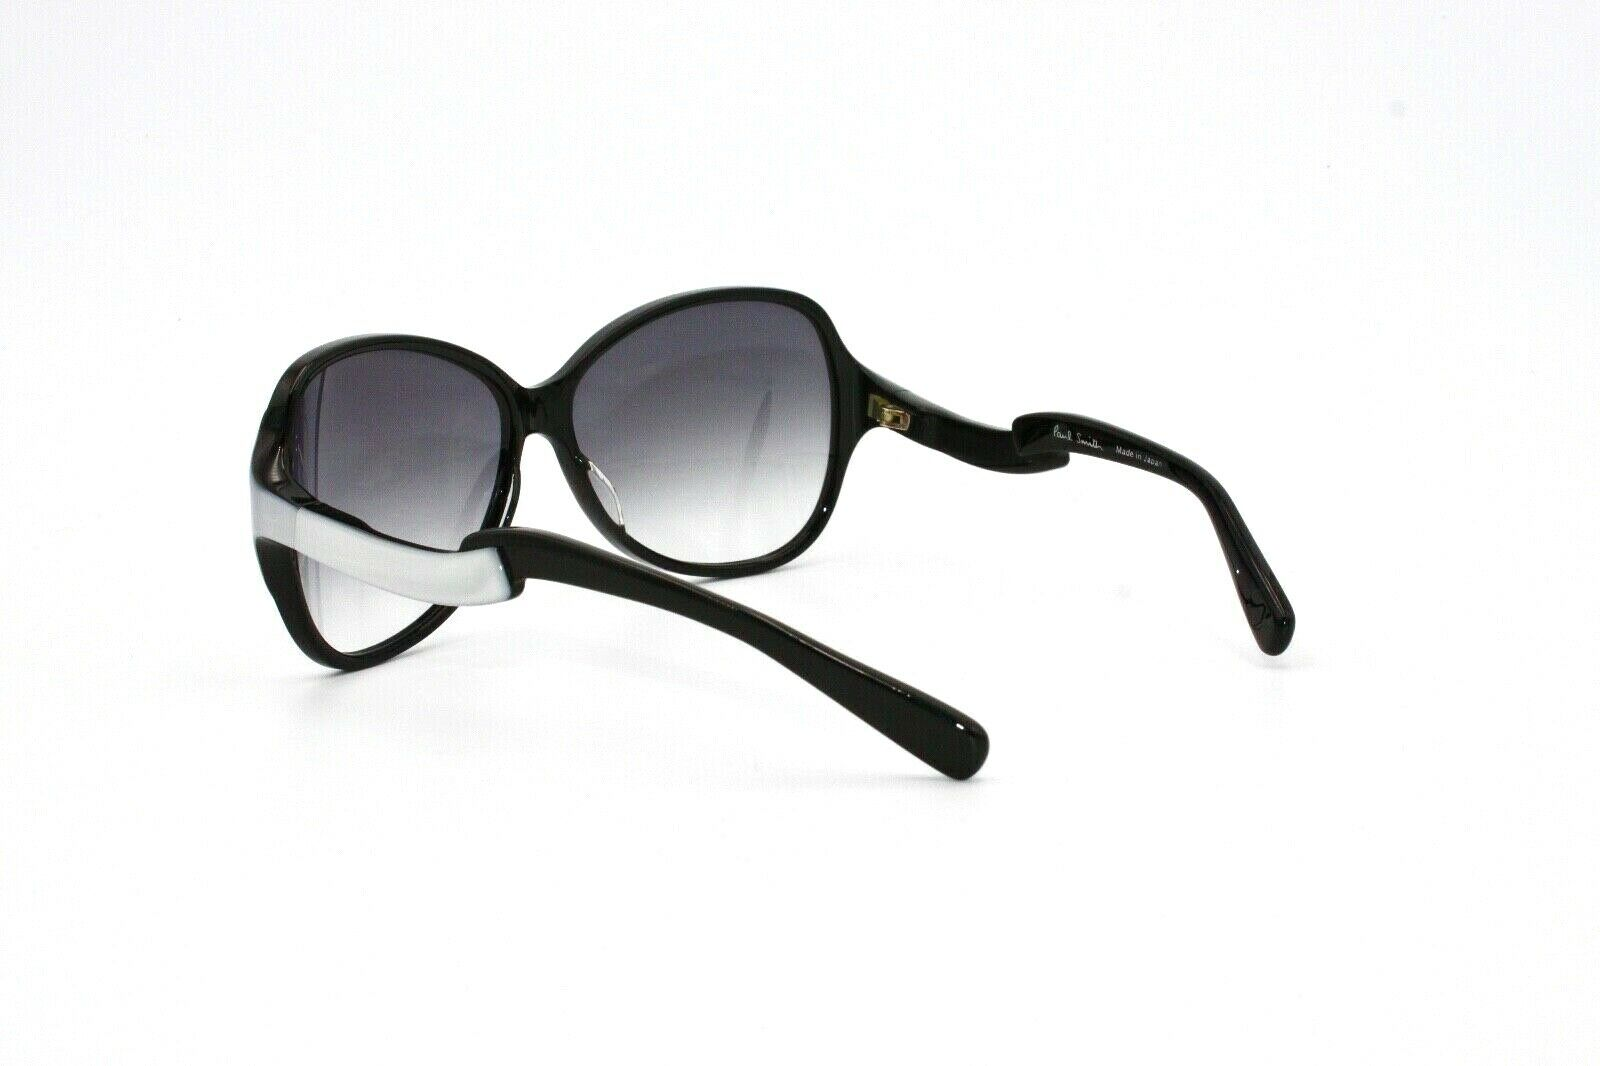 Paul Smith Sunglasses PS-388 BK/IS 59 14-120 Made in Japan - Mydesigneroptic